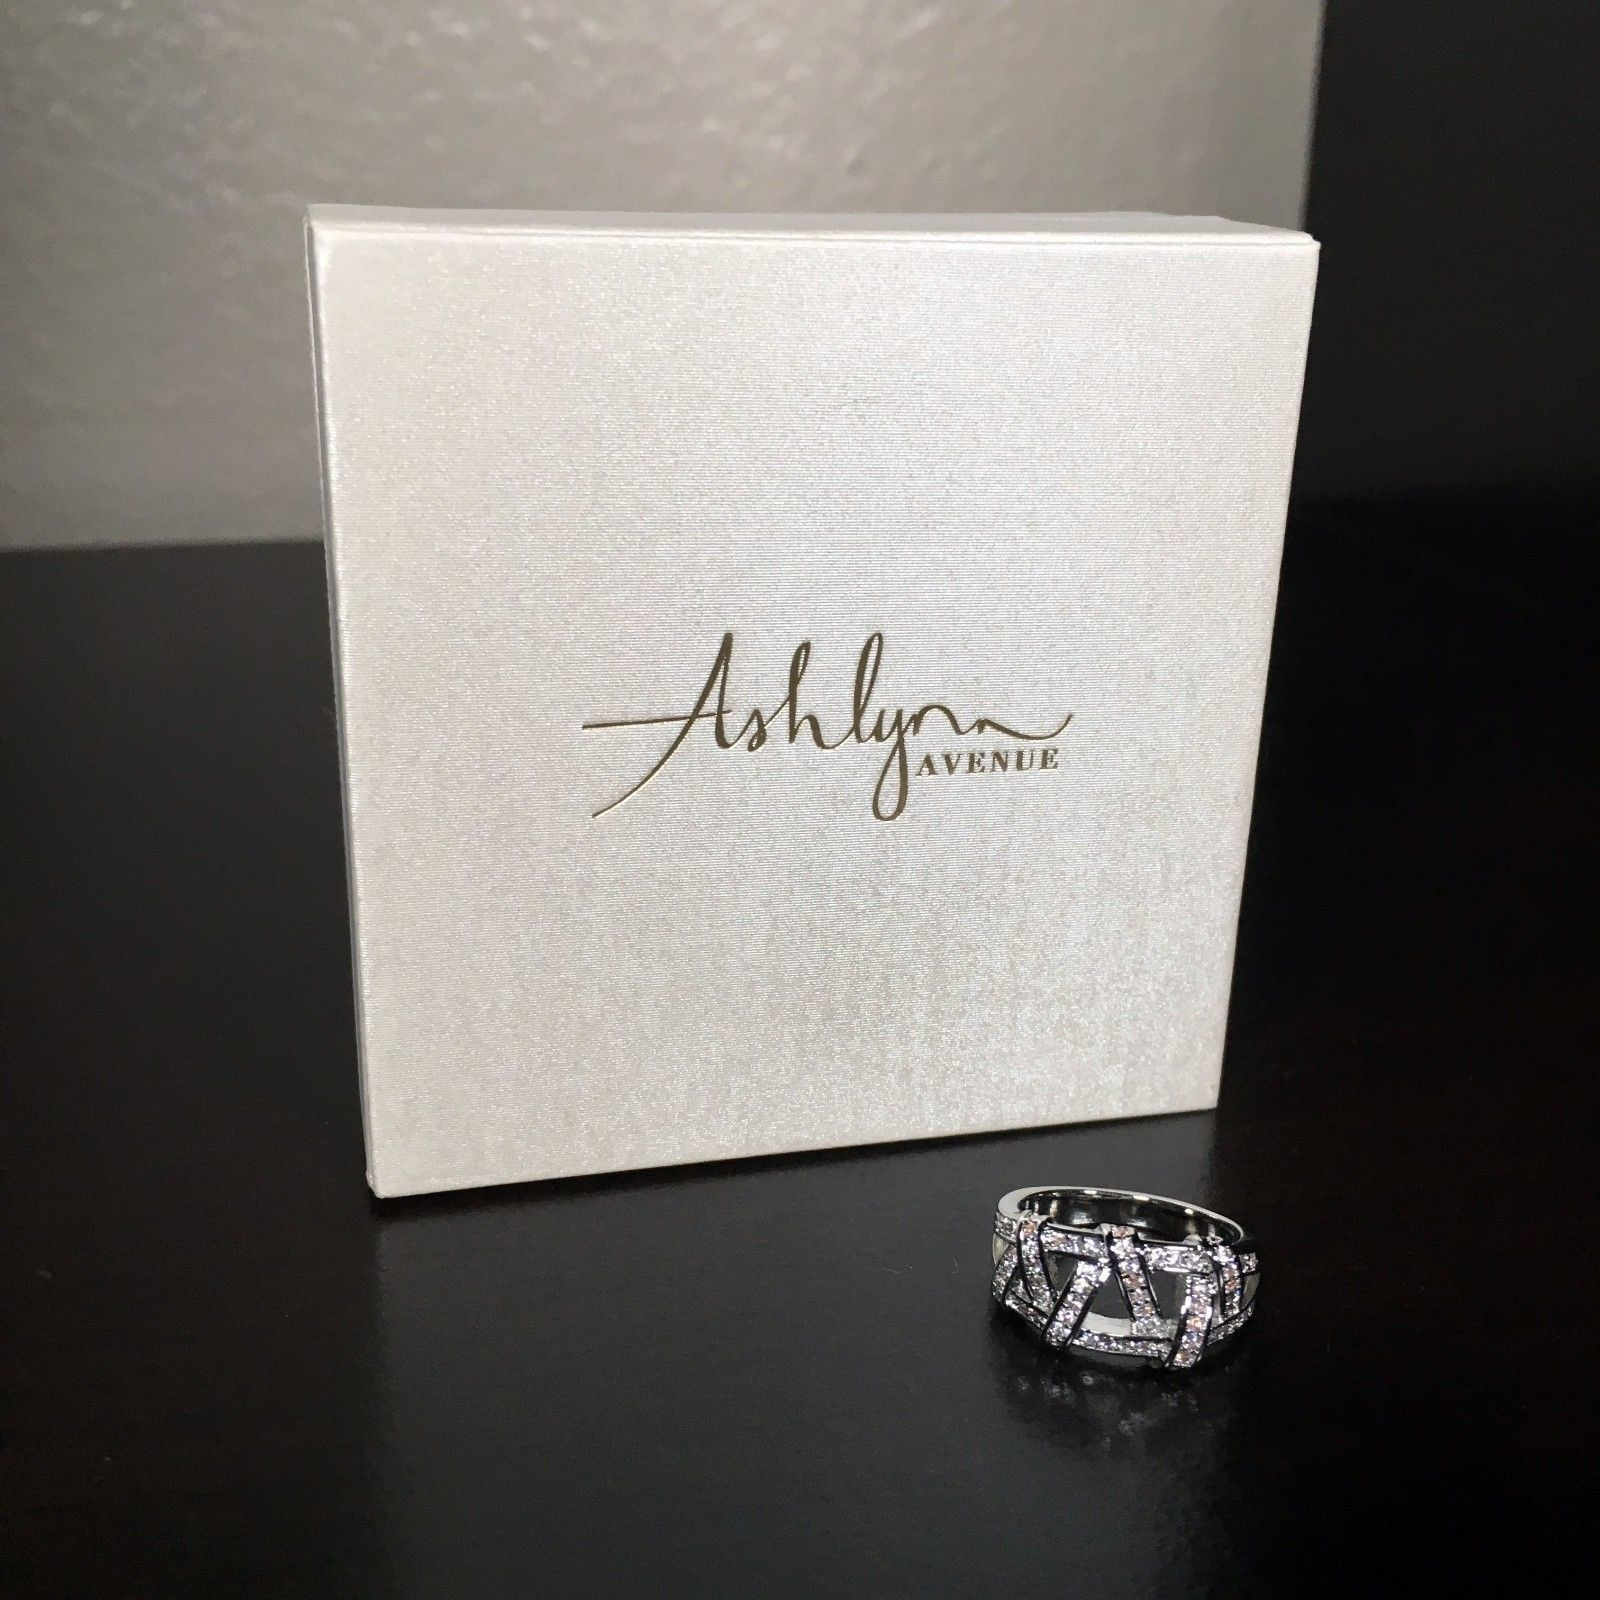 NEW Ashlynn Avenue CZ Aurora 18K White Gold Plated Weave Ring 0.42 Ctw Size 6